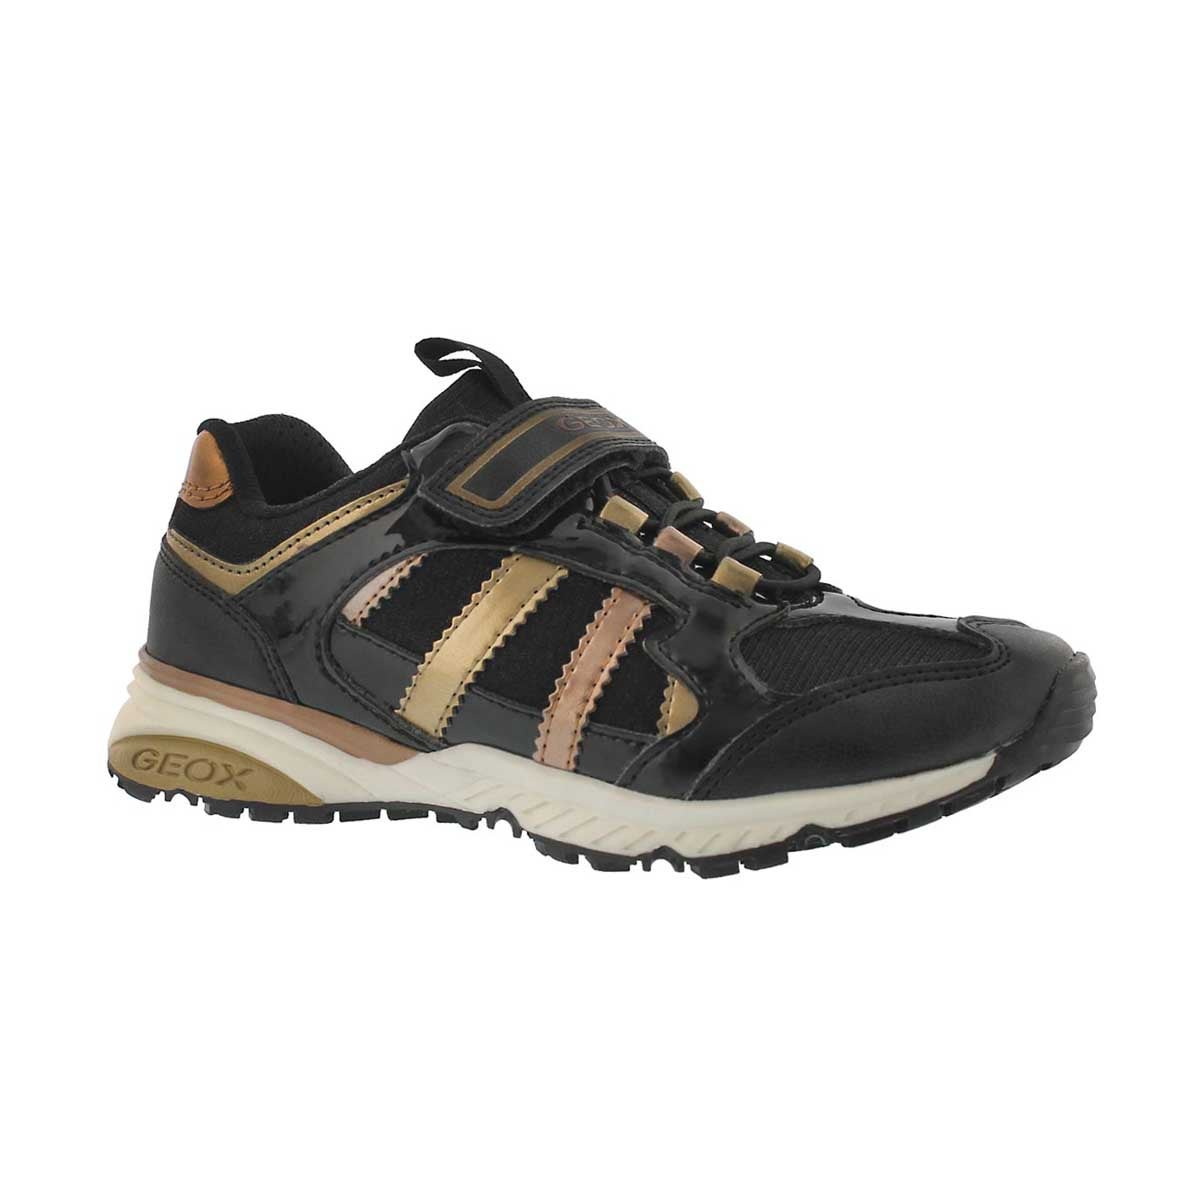 Girls' BERNIE black/bronze sneakers